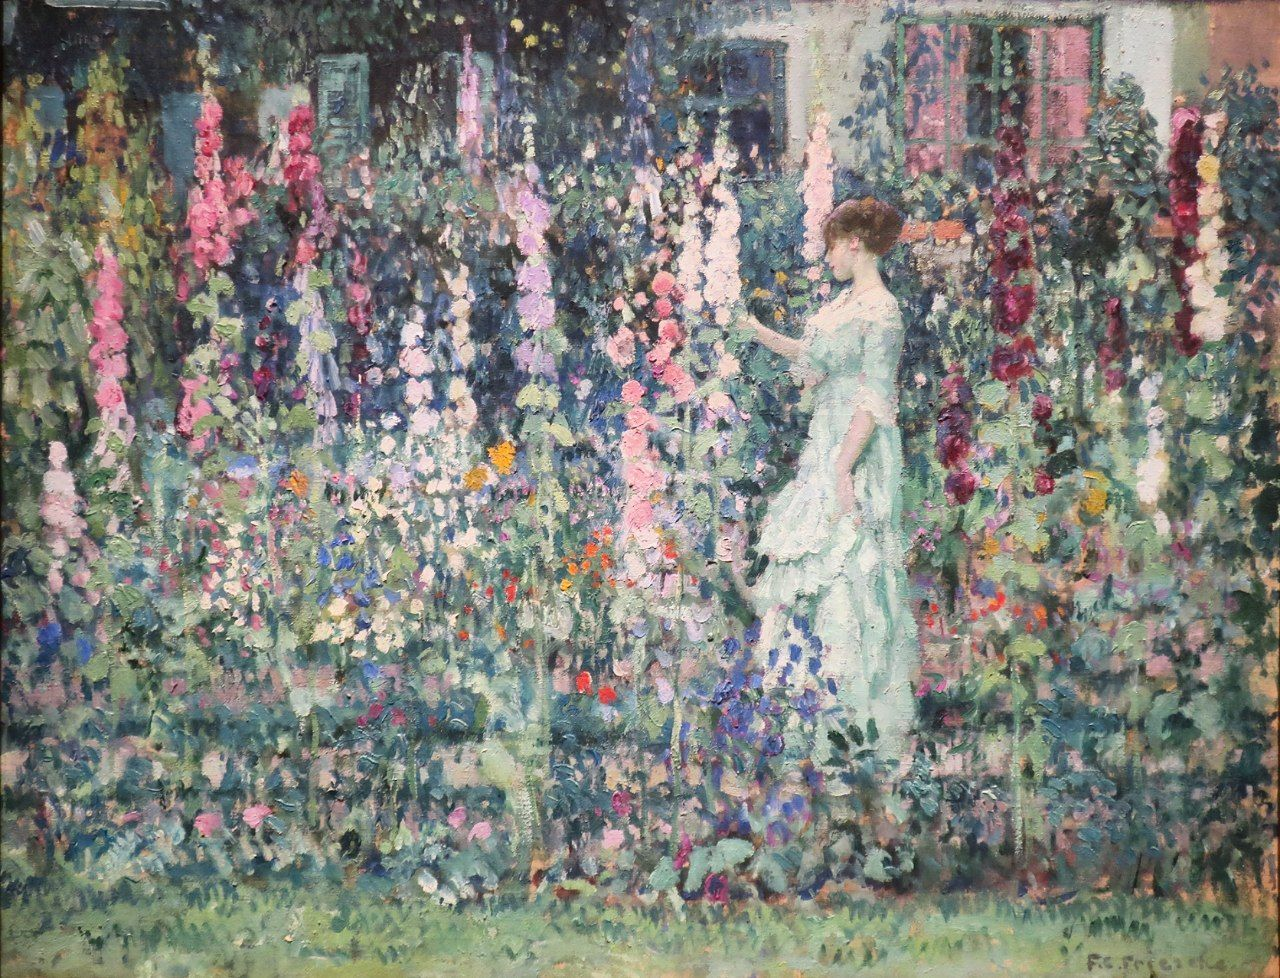 Hollyhocks c. 1912 By Frederick Carl Frieseke